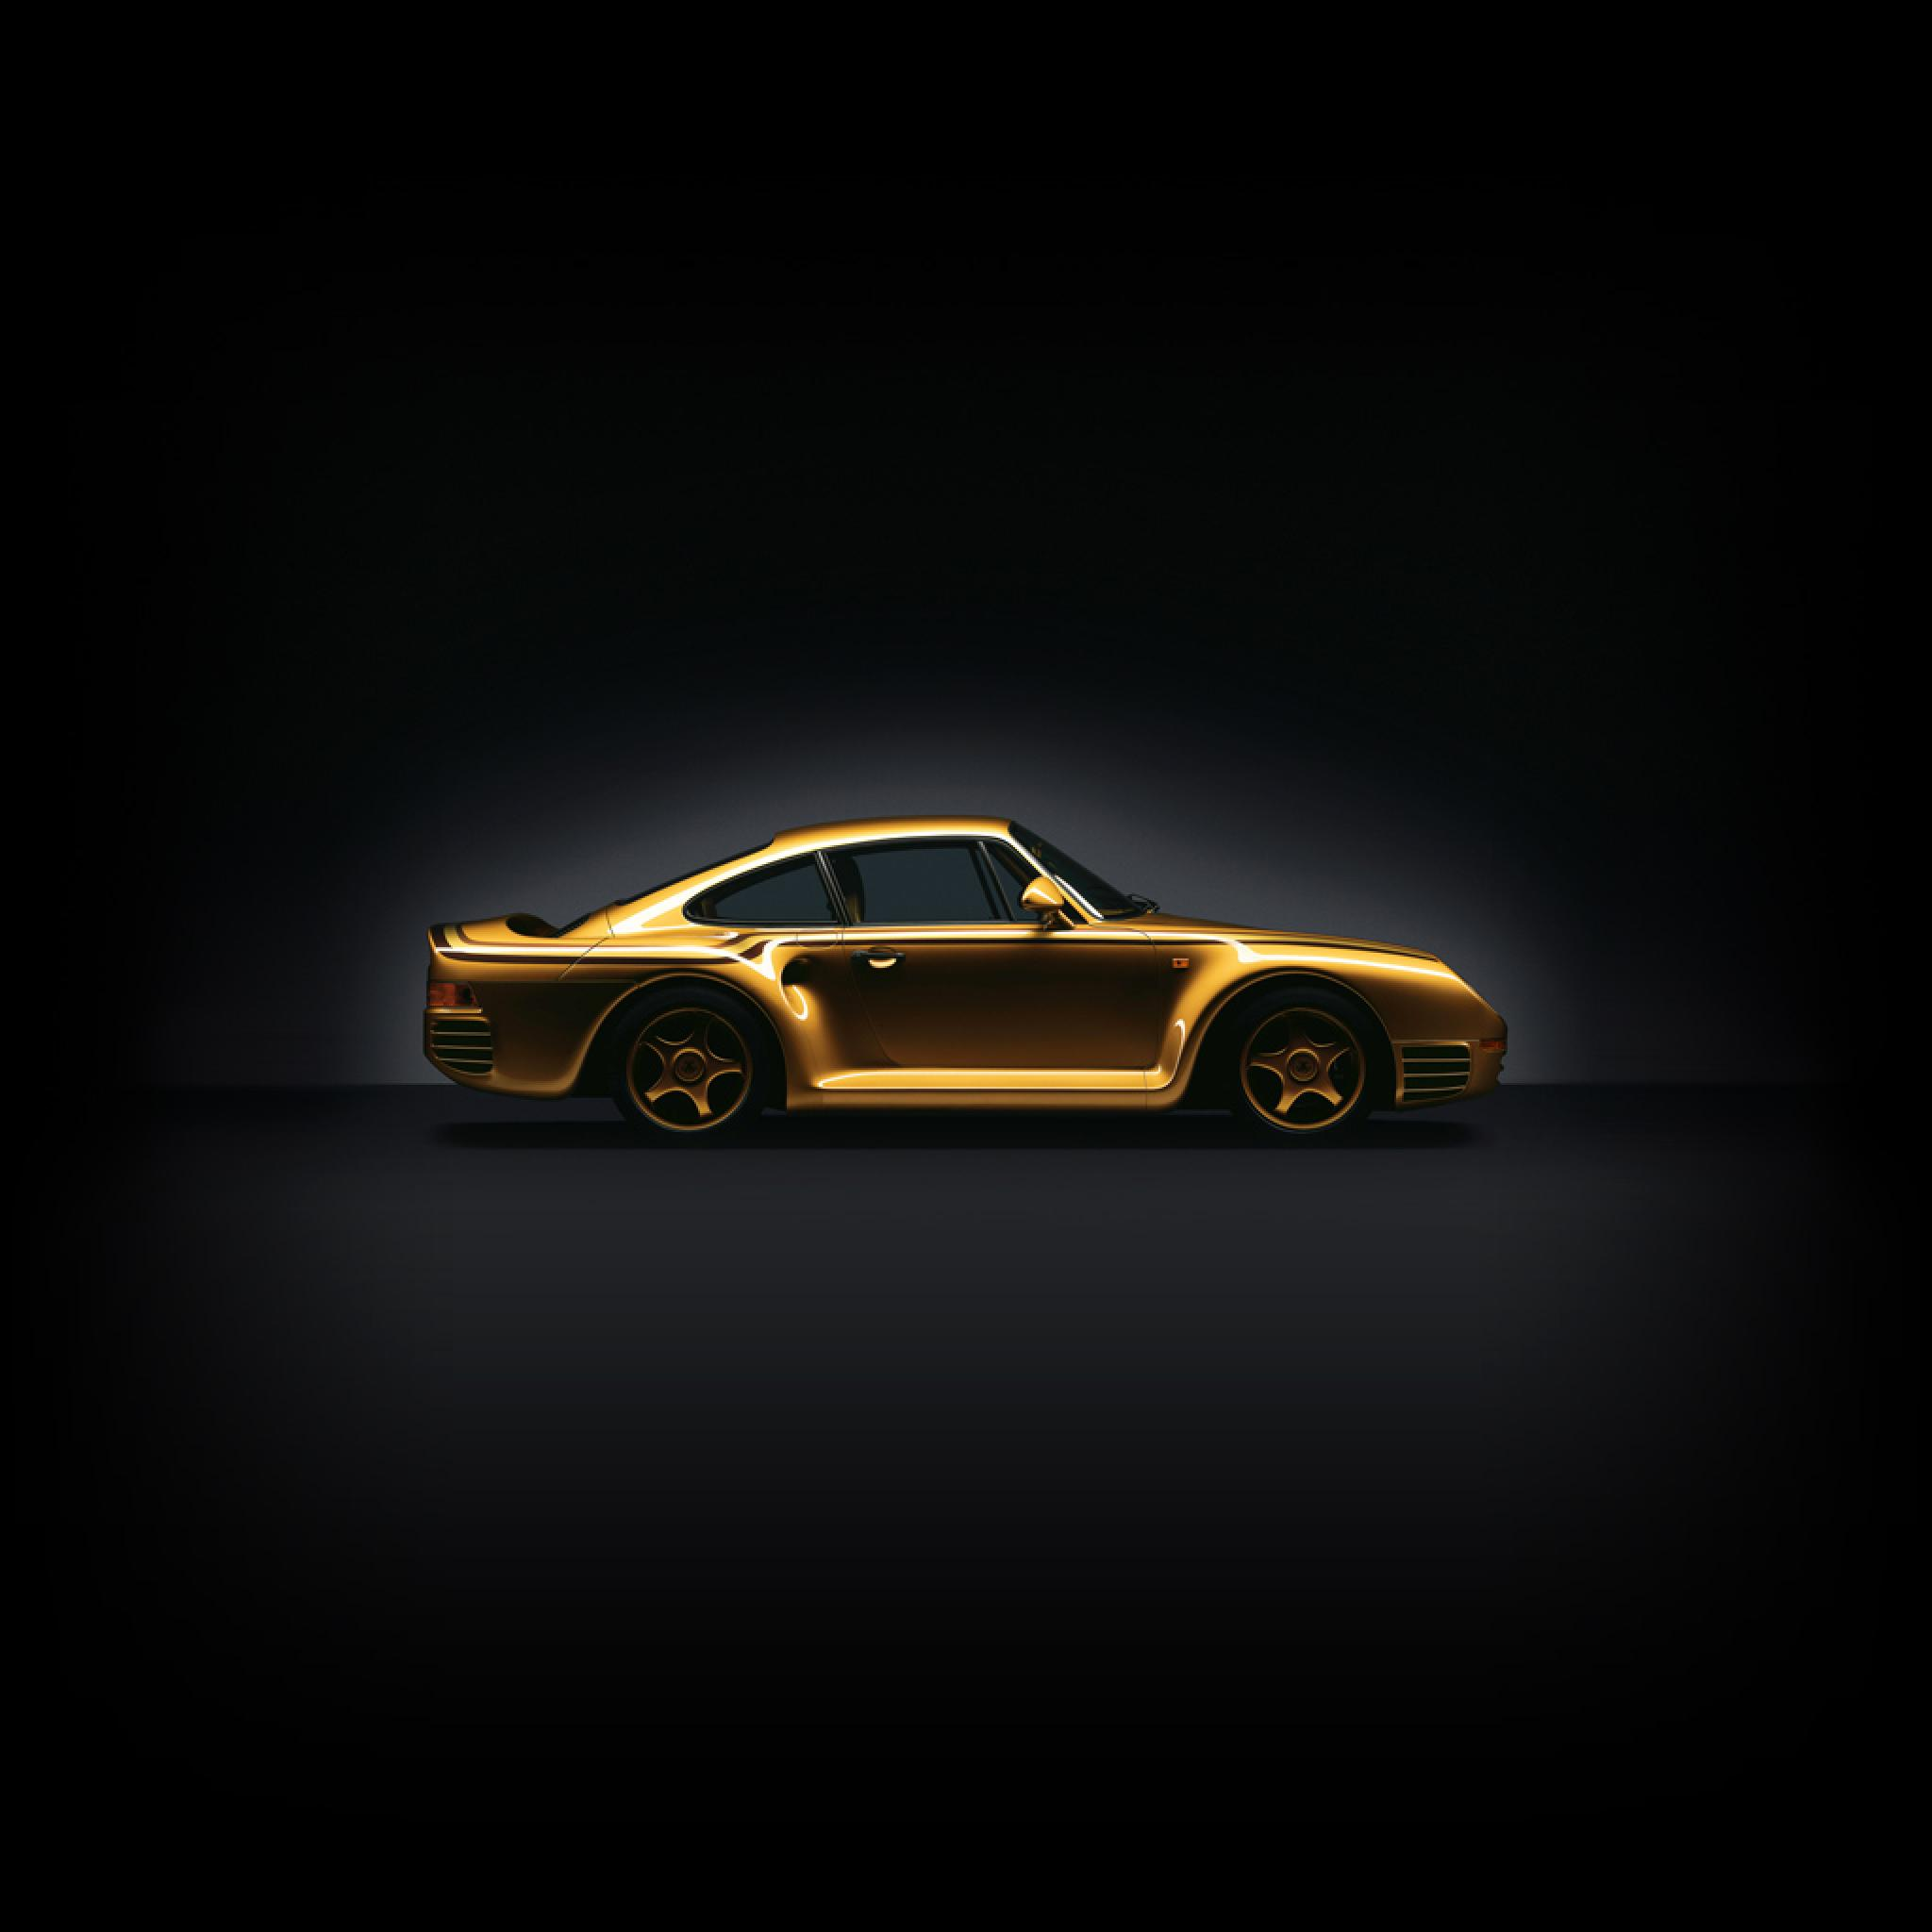 Cars Porsche 959 Exclusive Gold Plated IPad IPhone HD